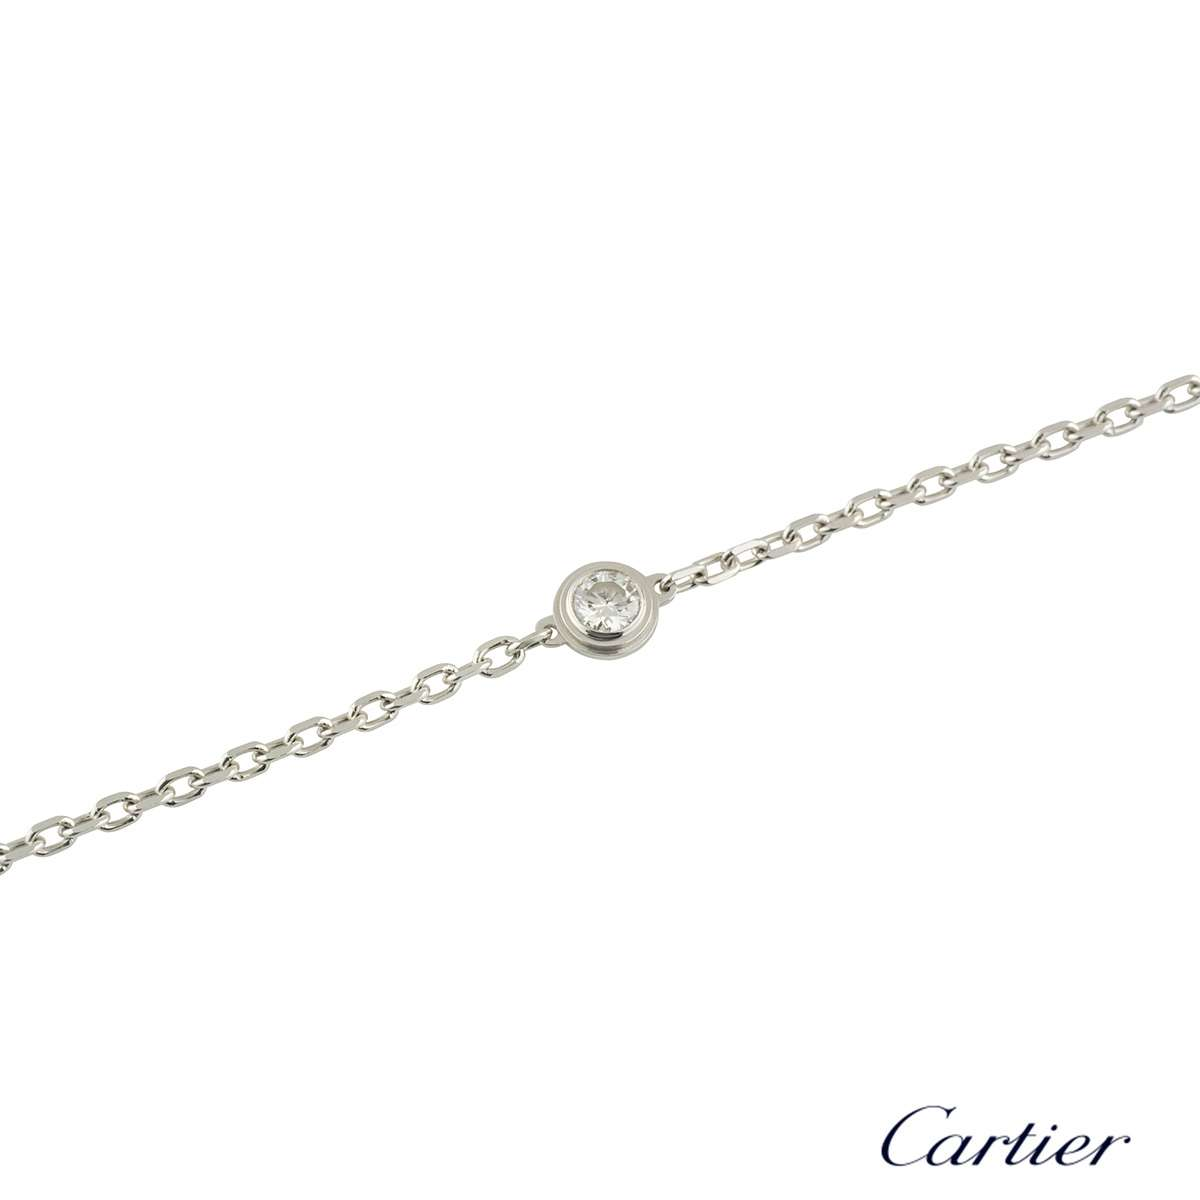 Cartier Diamants Legers Diamond Bracelet B6037200